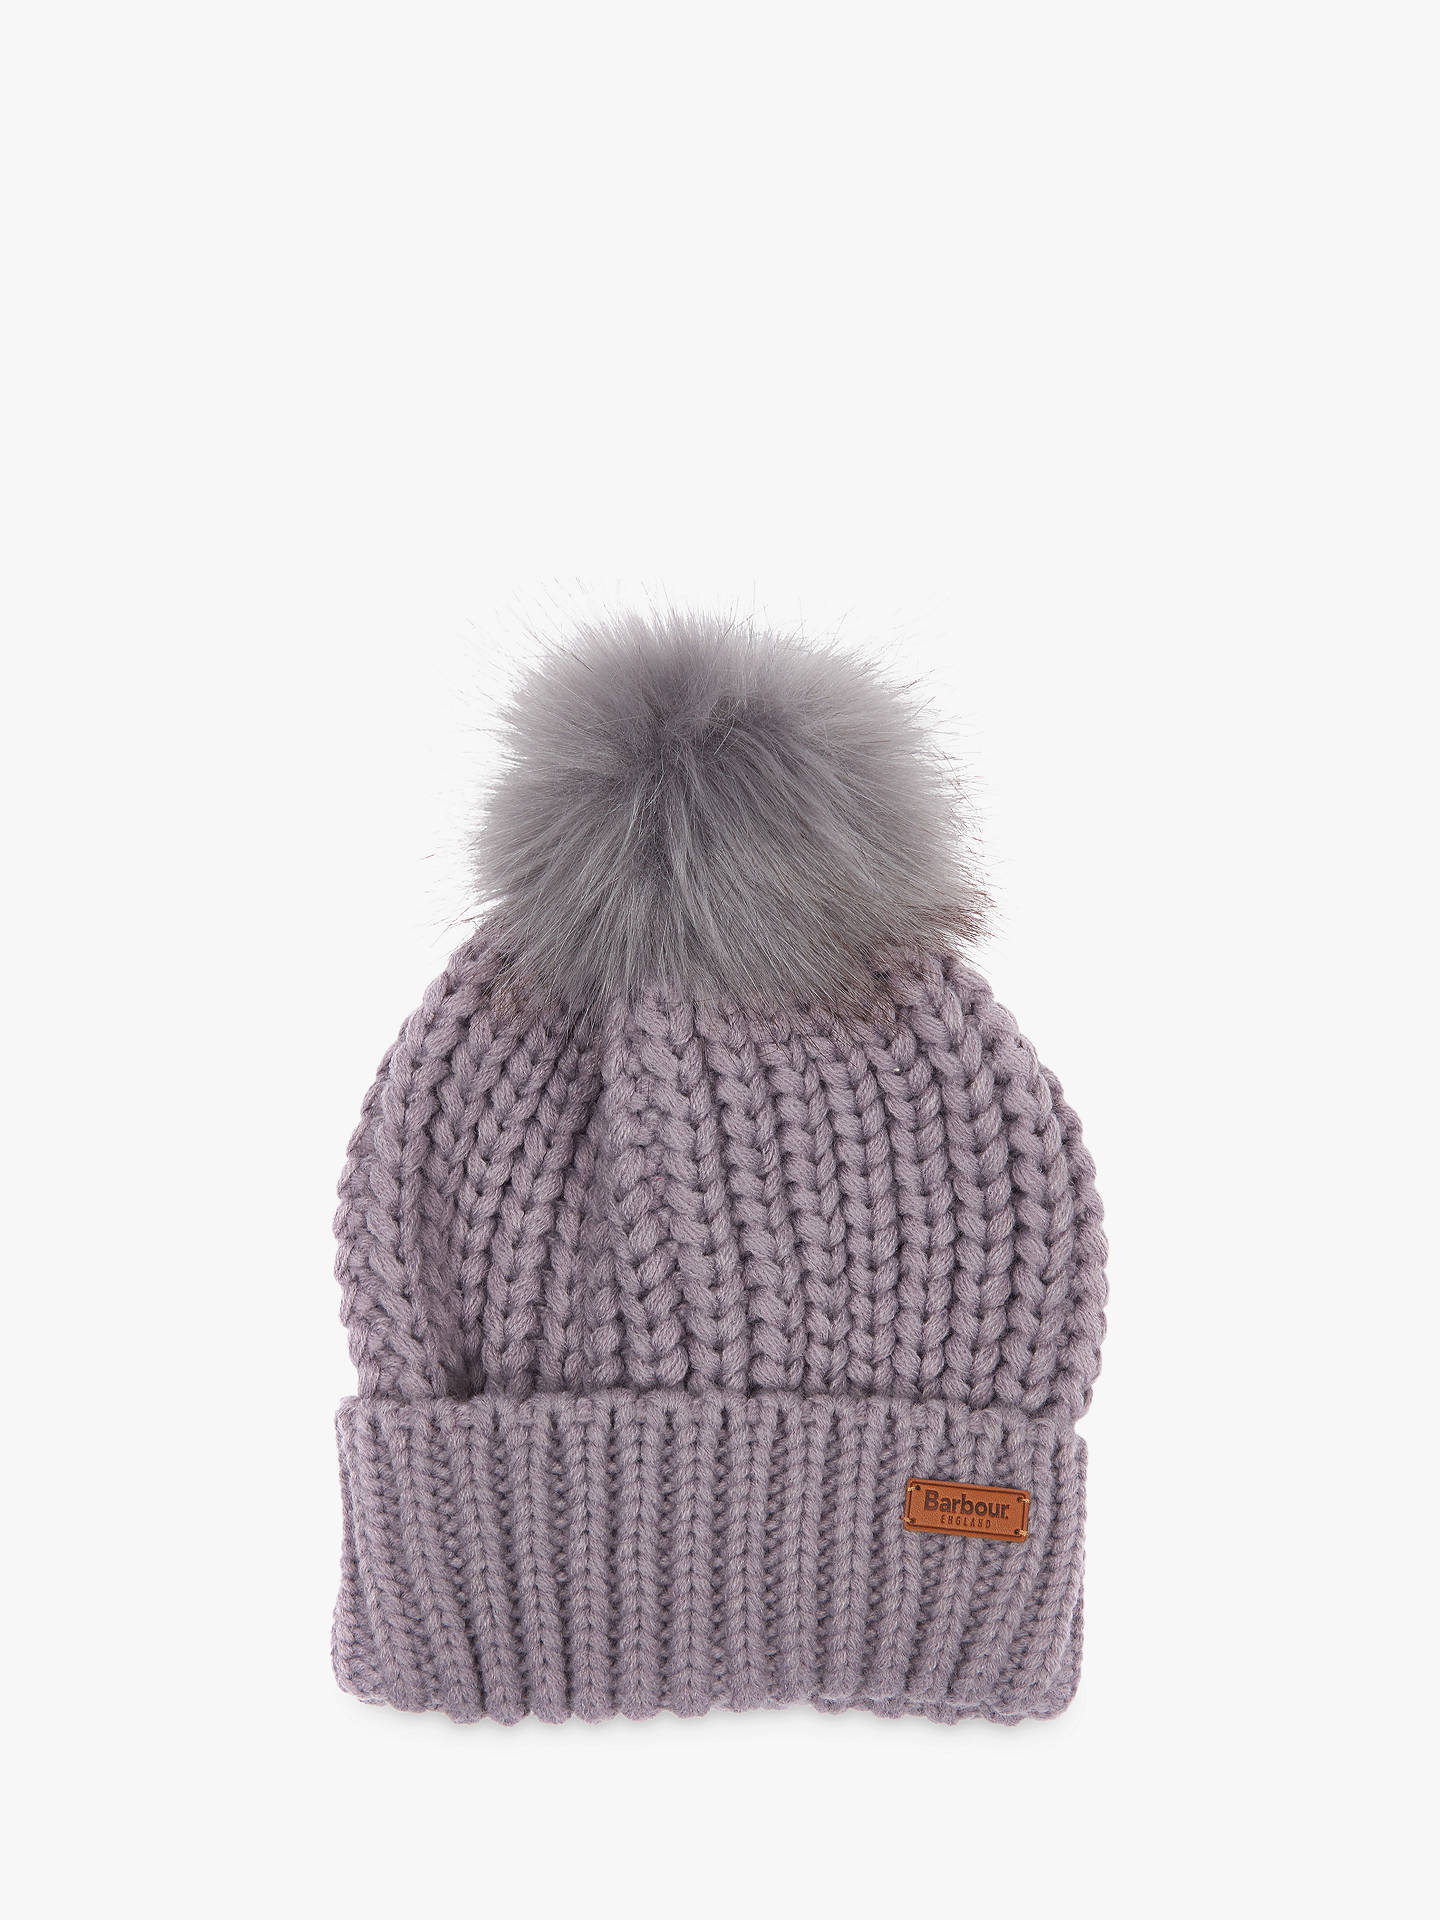 26db15e95a1e9 Barbour Saltburn Pom Pom Beanie Hat at John Lewis   Partners